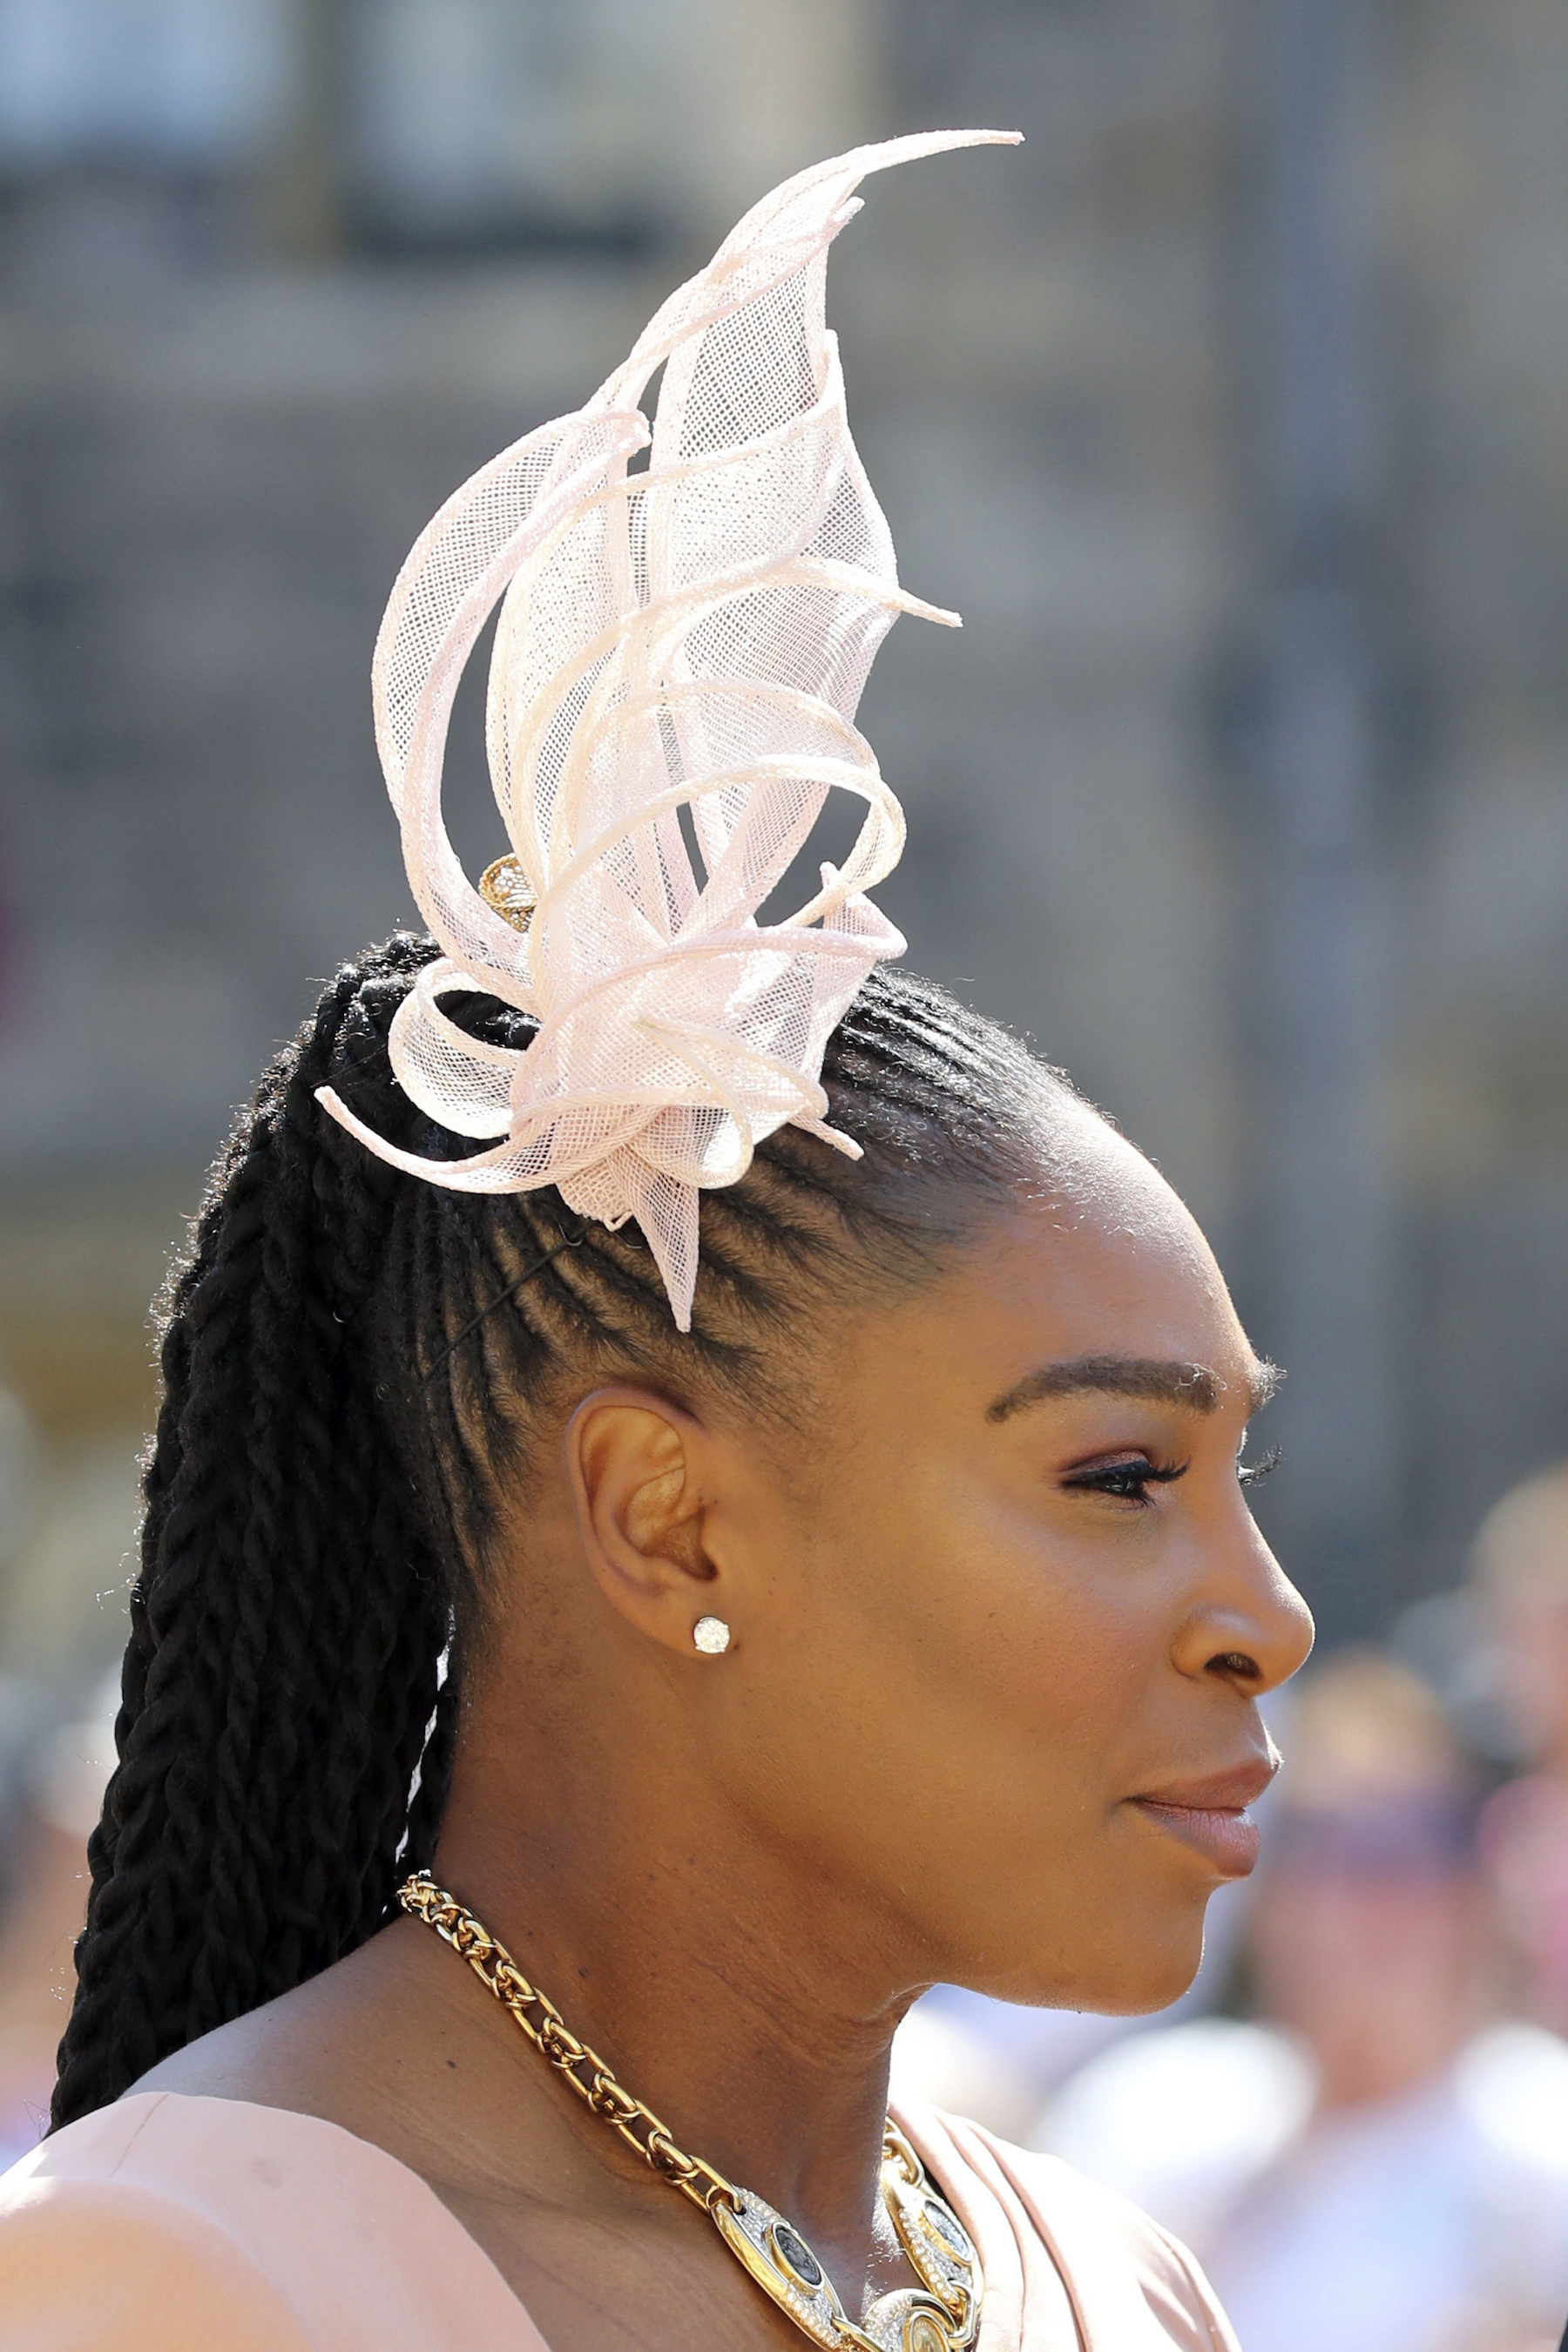 "<div class=""meta image-caption""><div class=""origin-logo origin-image ap""><span>AP</span></div><span class=""caption-text"">Serena Williams arrives at St George's Chapel at Windsor Castle for the wedding of Meghan Markle and Prince Harry. (Gareth Fuller/PA Wire)</span></div>"